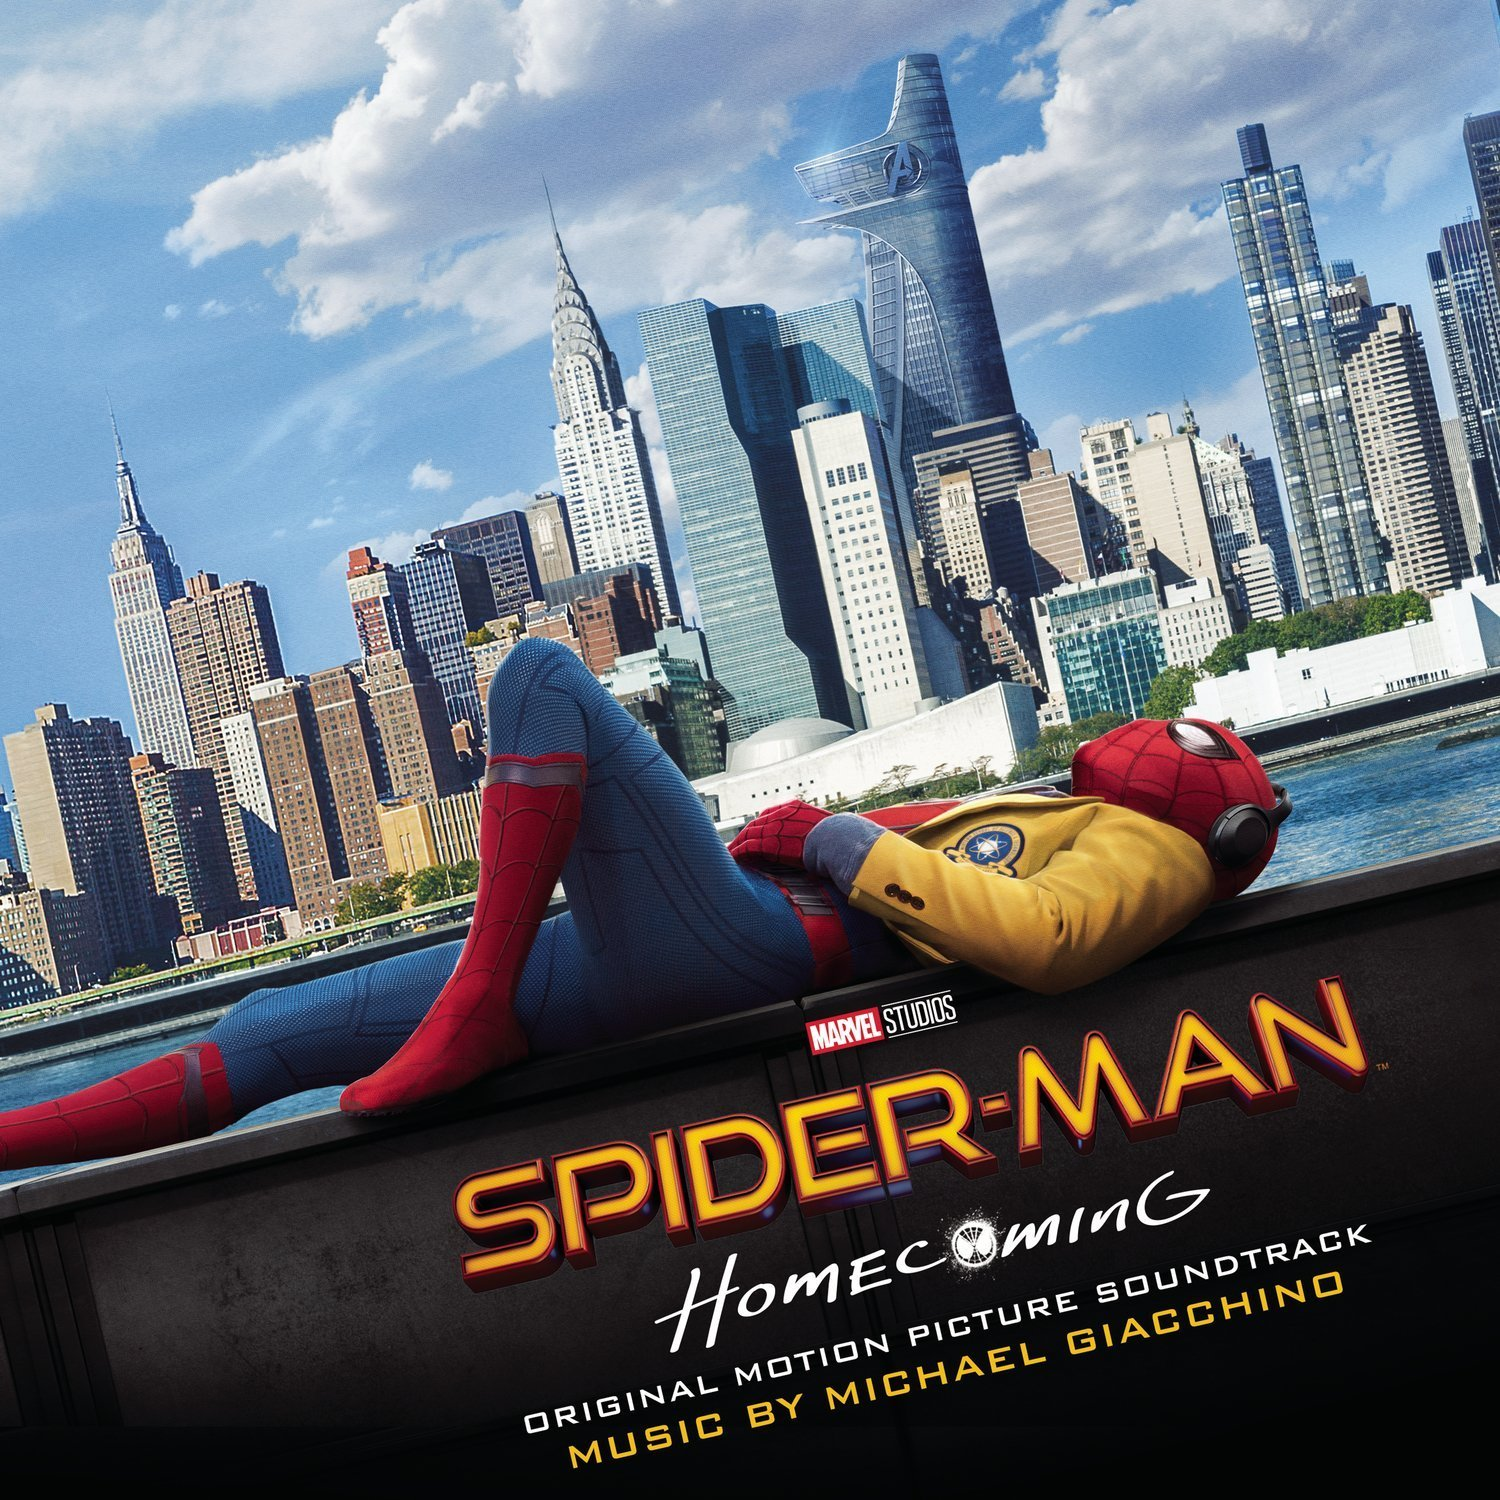 ost 07 17 Spiderman Home